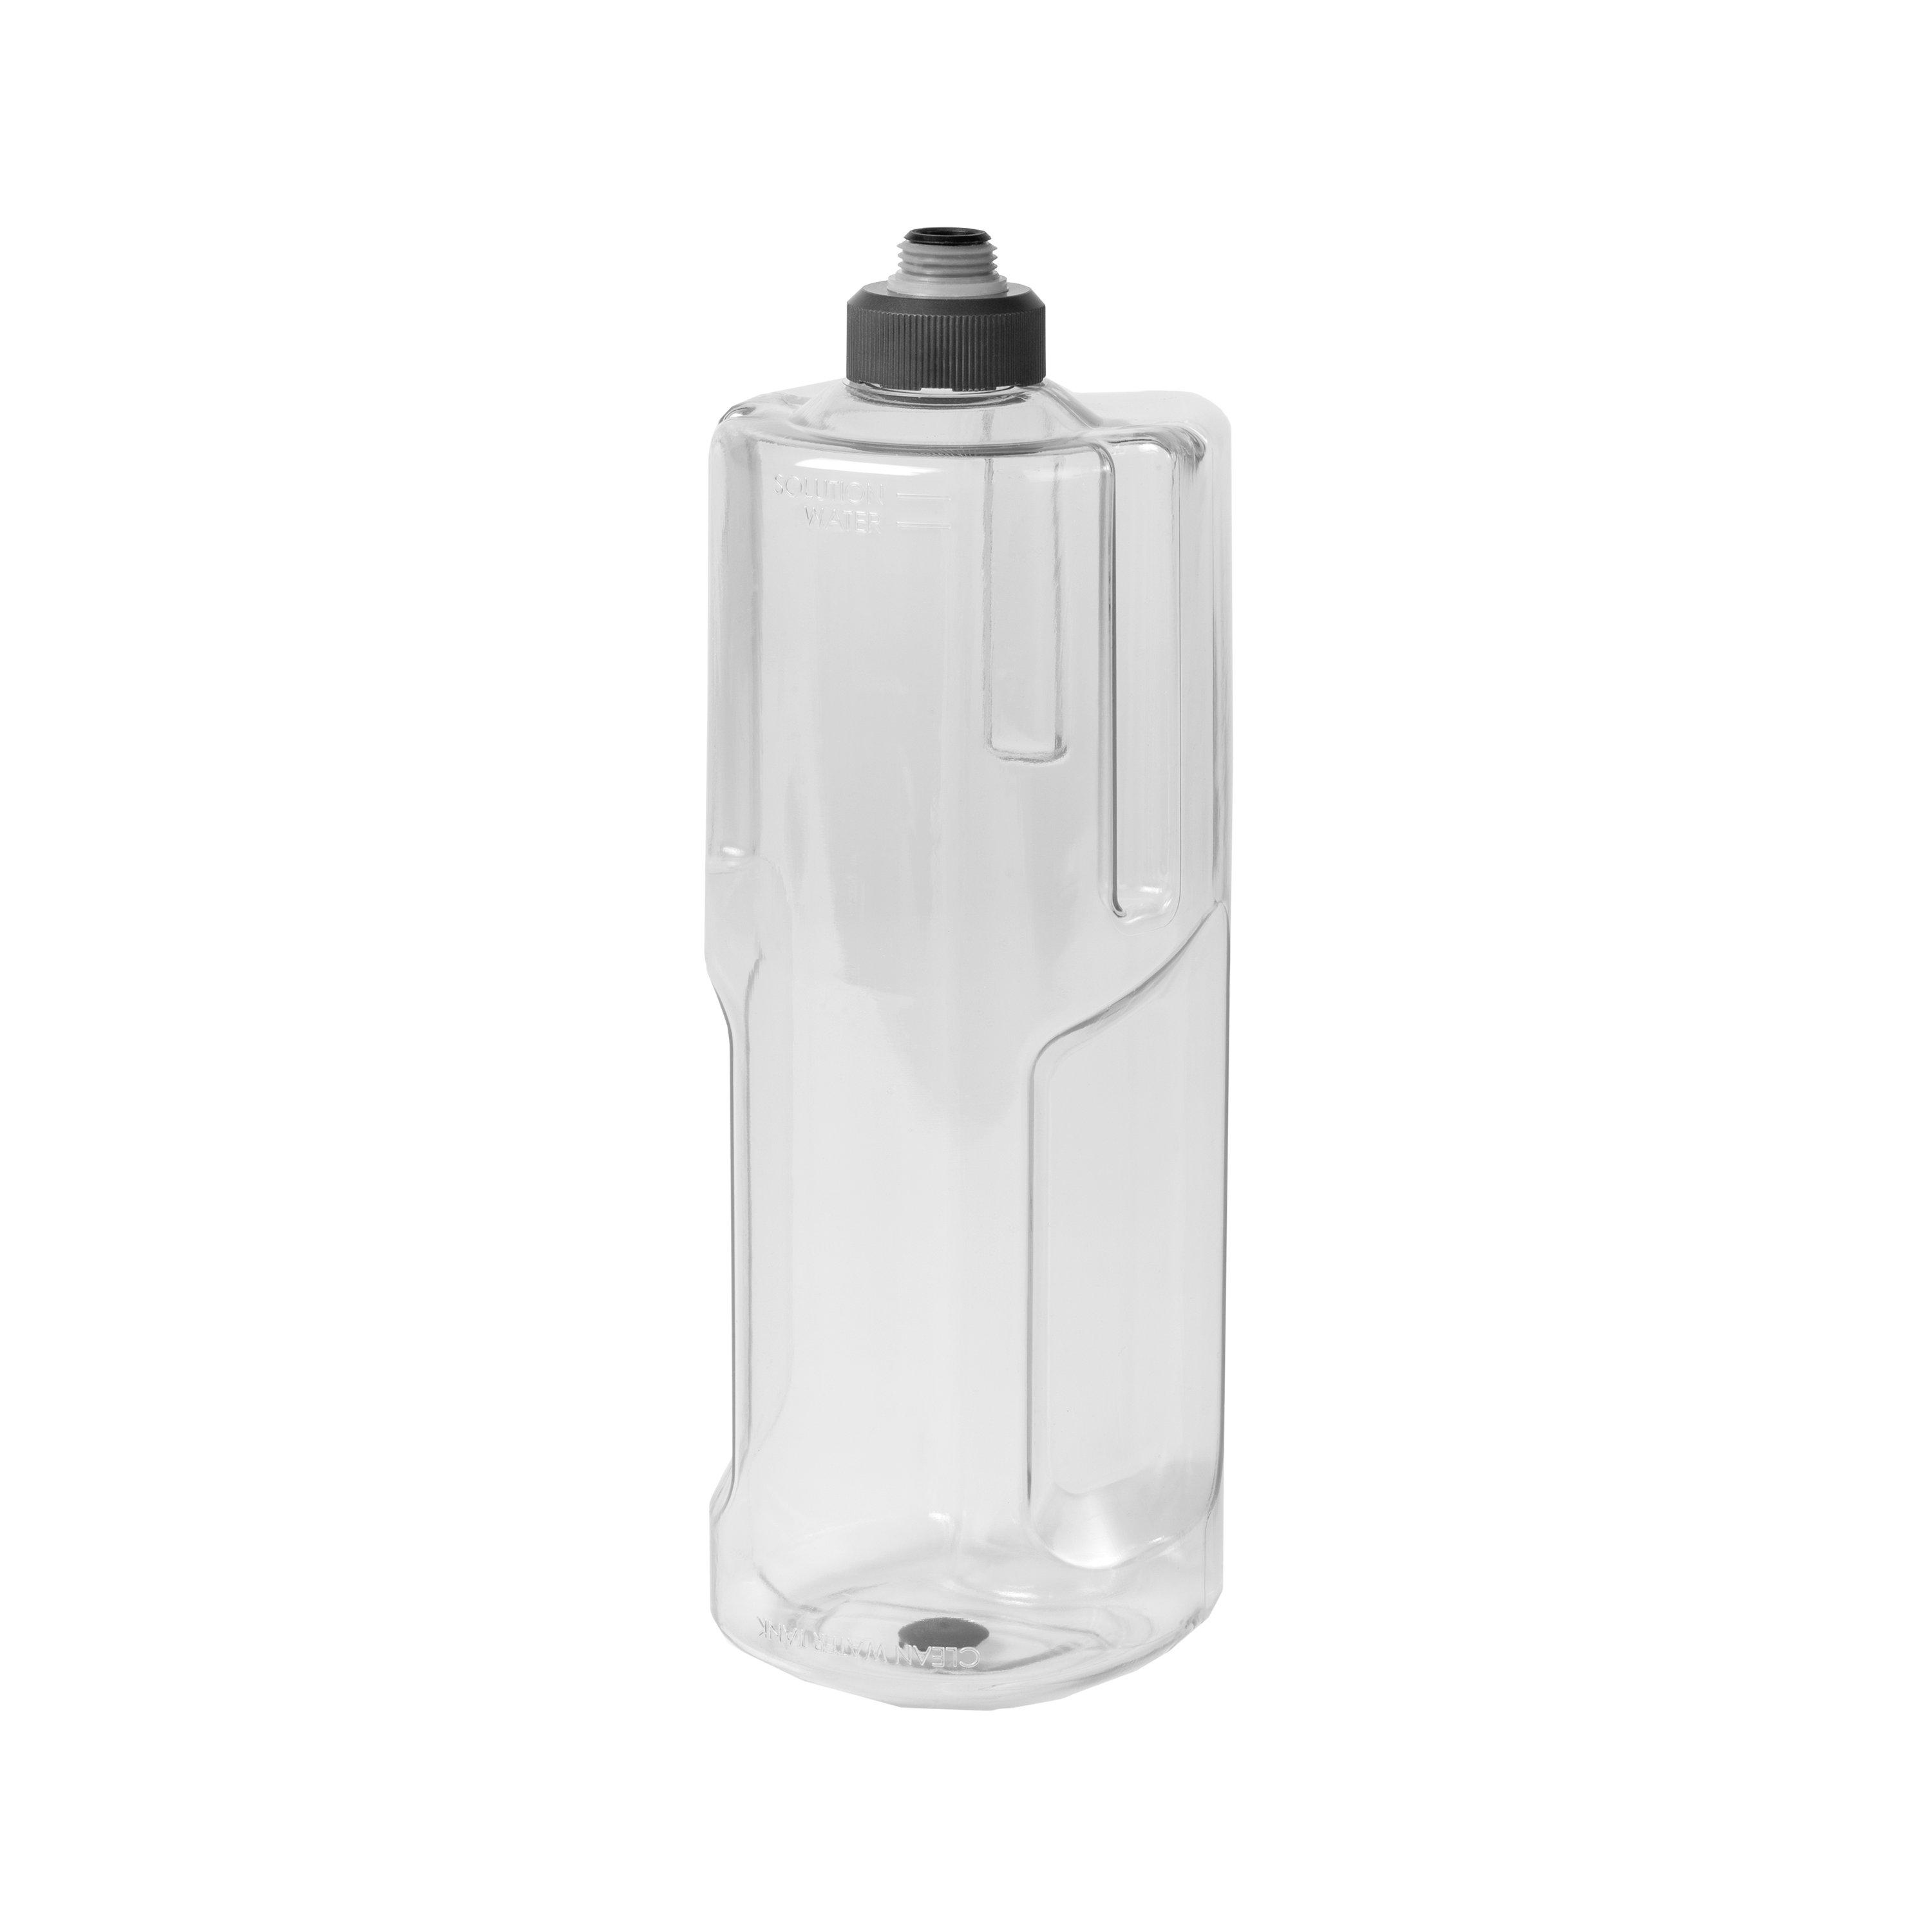 Solution Tank with Cap for PowerDash